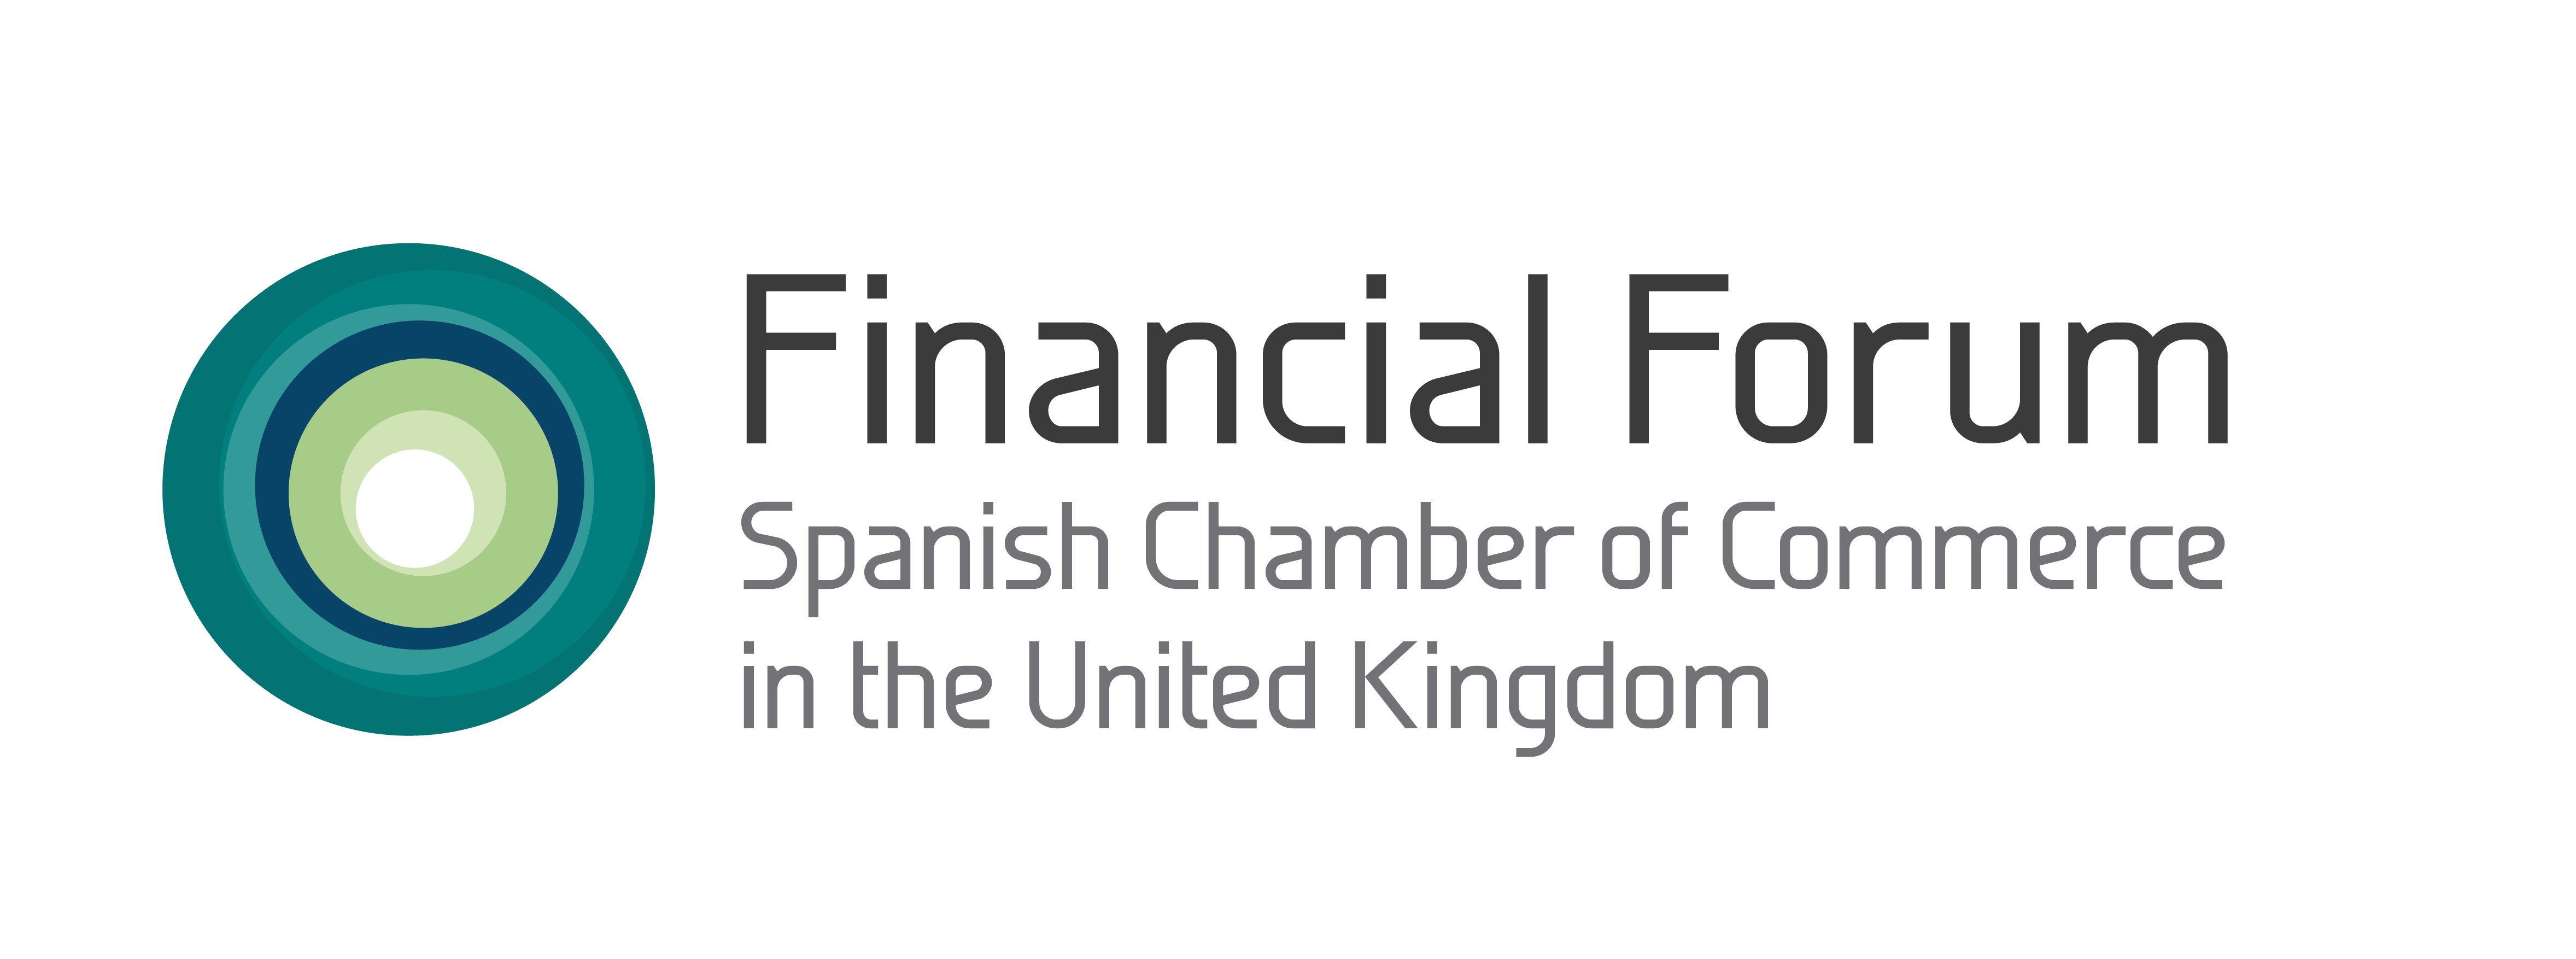 Financial Forum l Breakfast with José Viñals